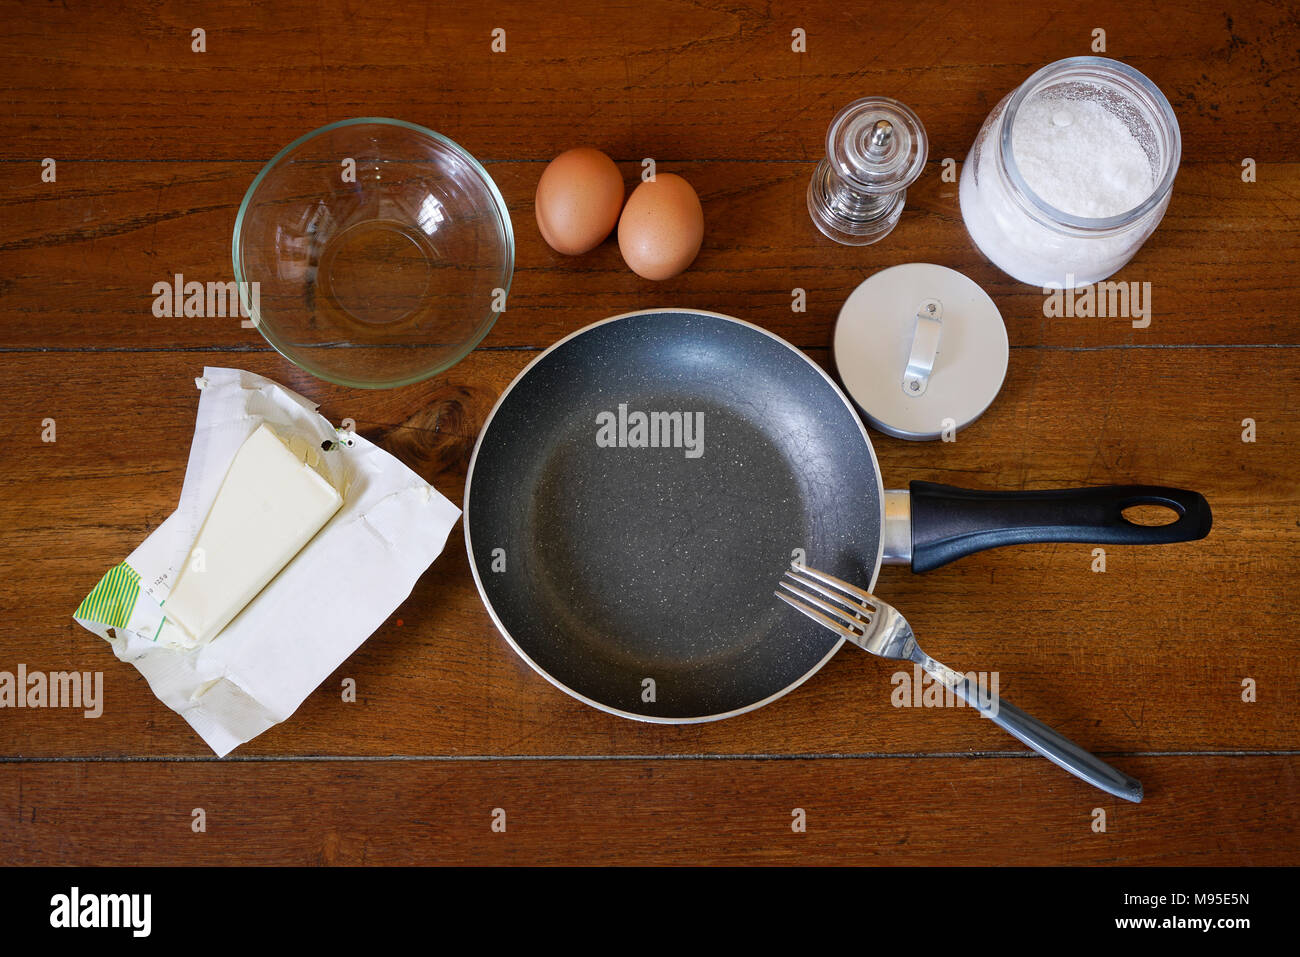 Preparation of fried eggs on a wooden table - Stock Image